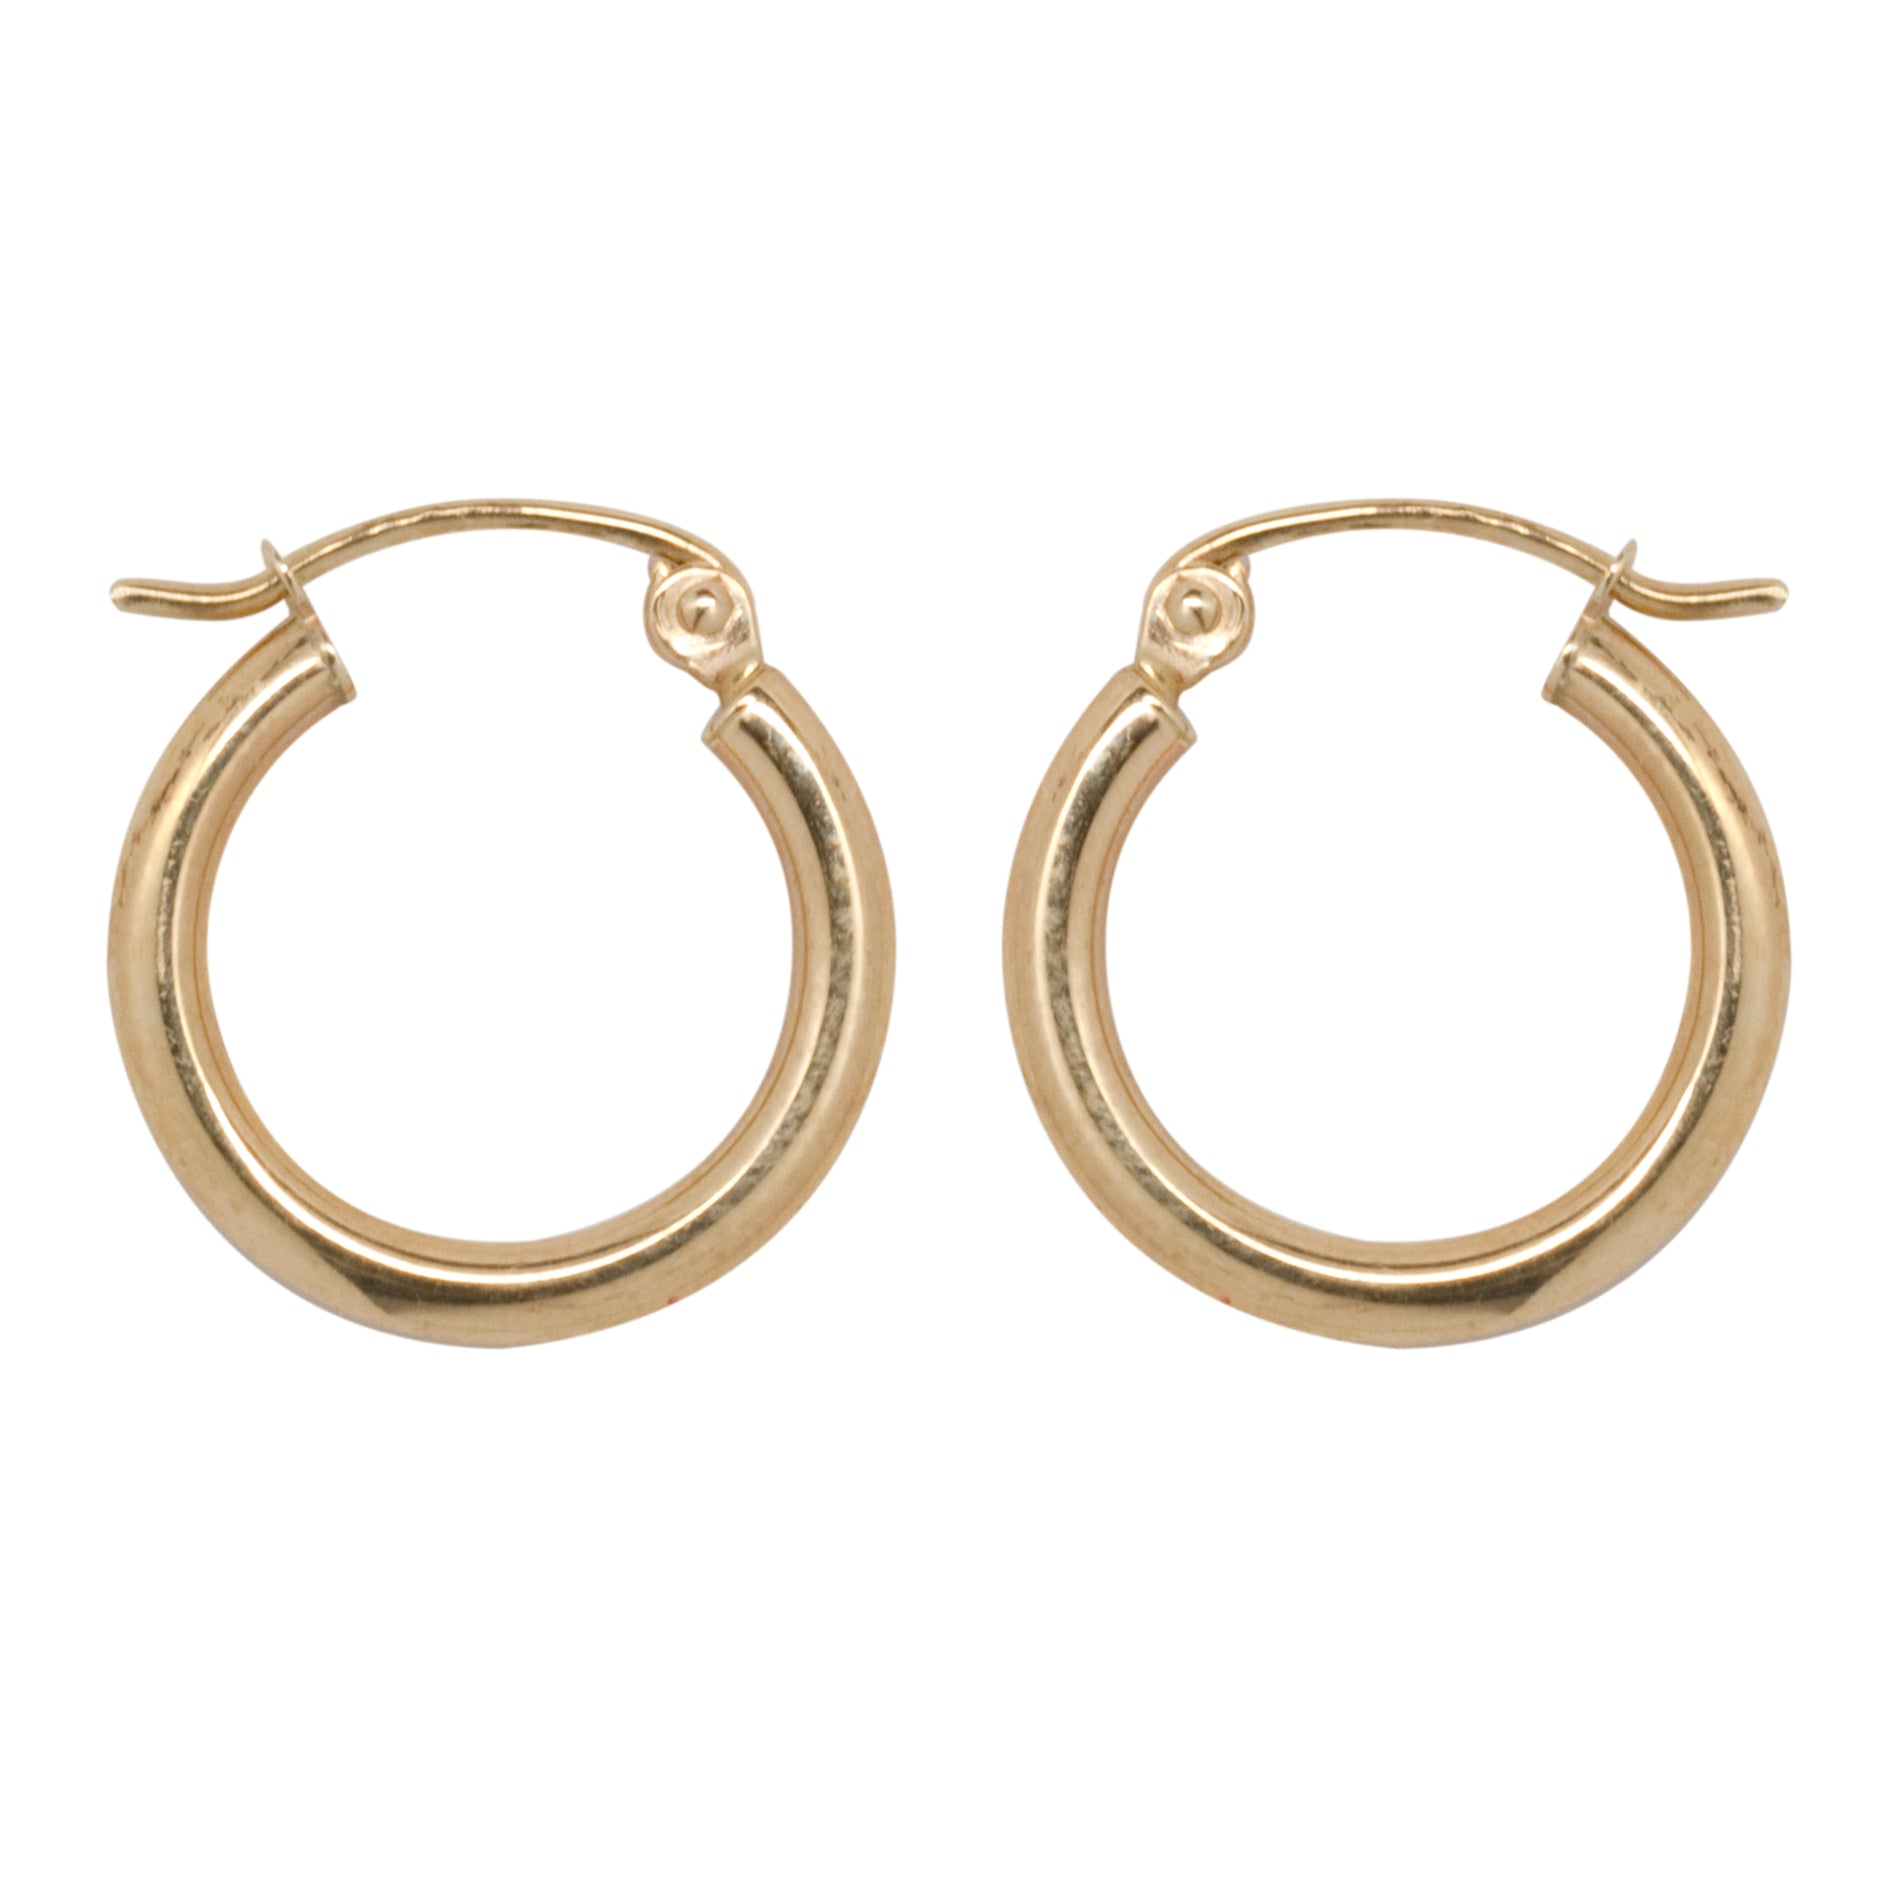 earring hoop medium whistles accessories sale plain jewellery earrings women gold